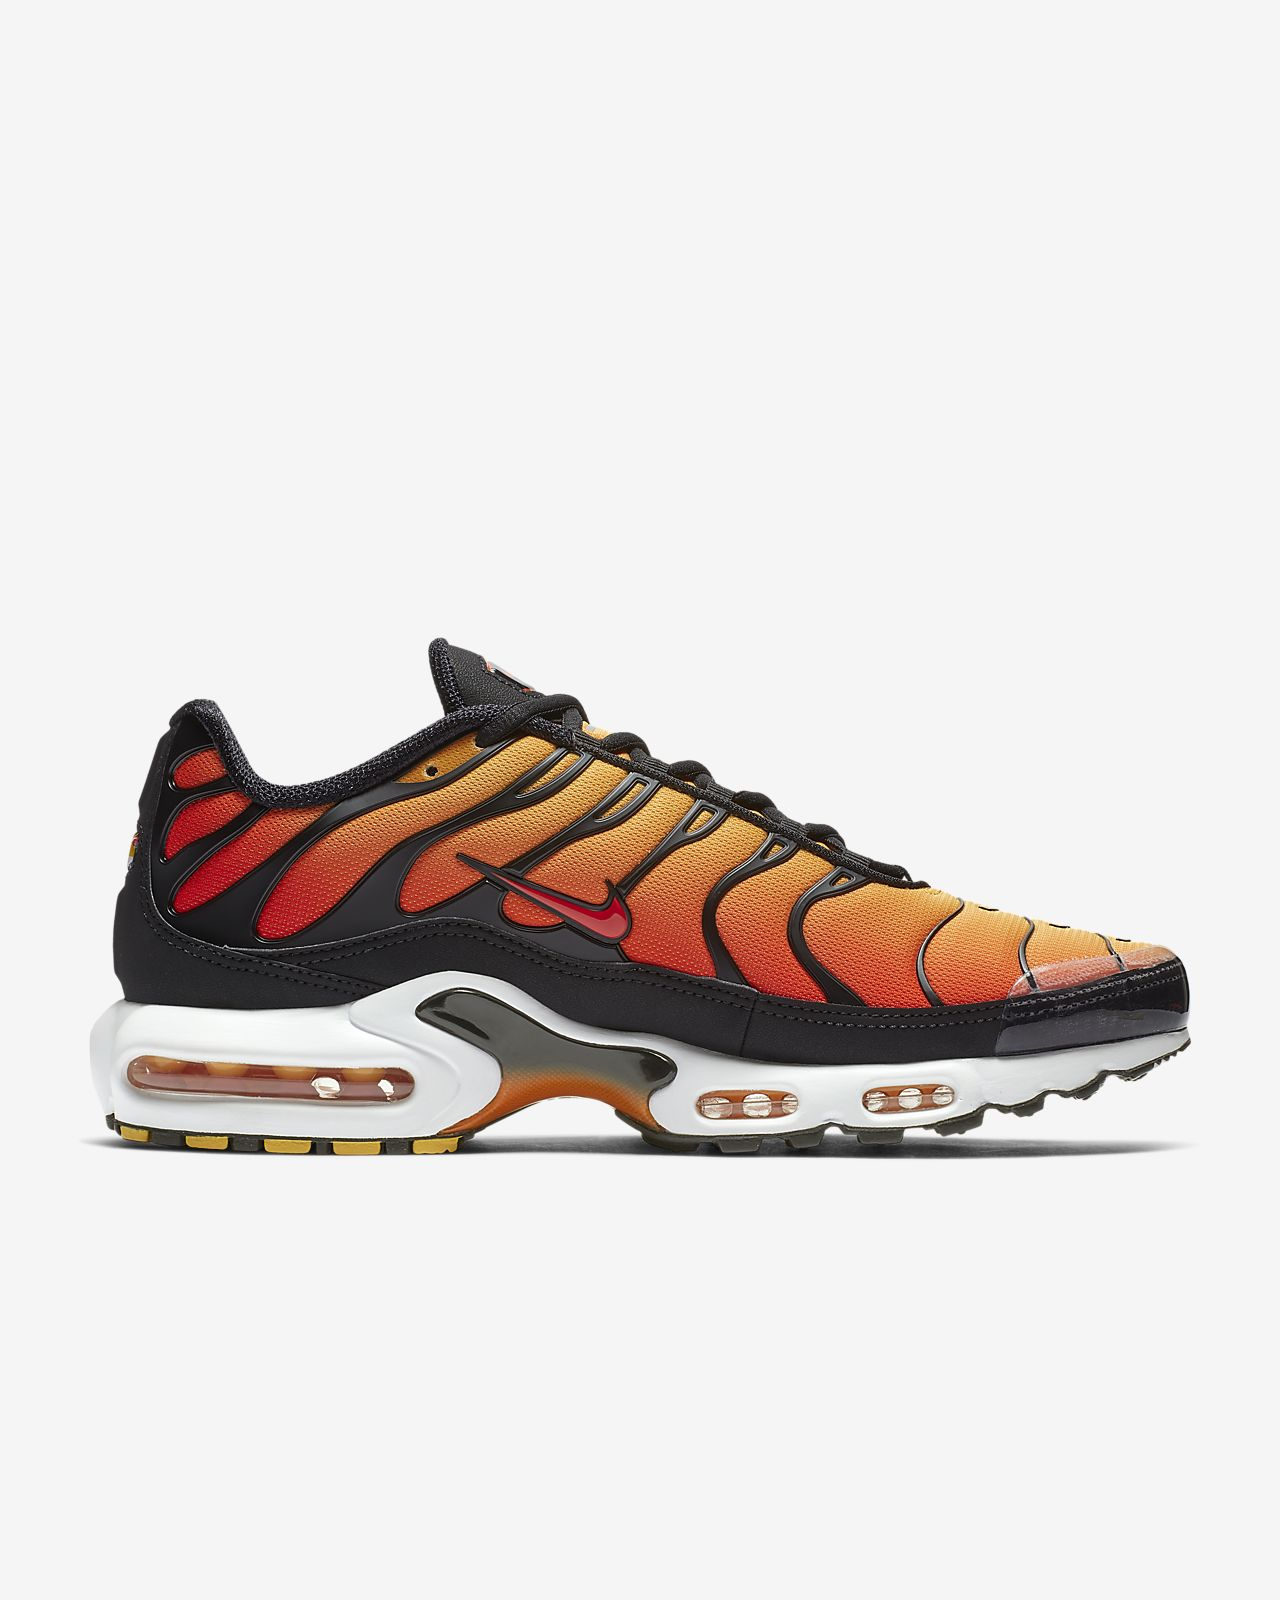 promo code 0ea07 b711b Nike Air Max Plus OG Shoe